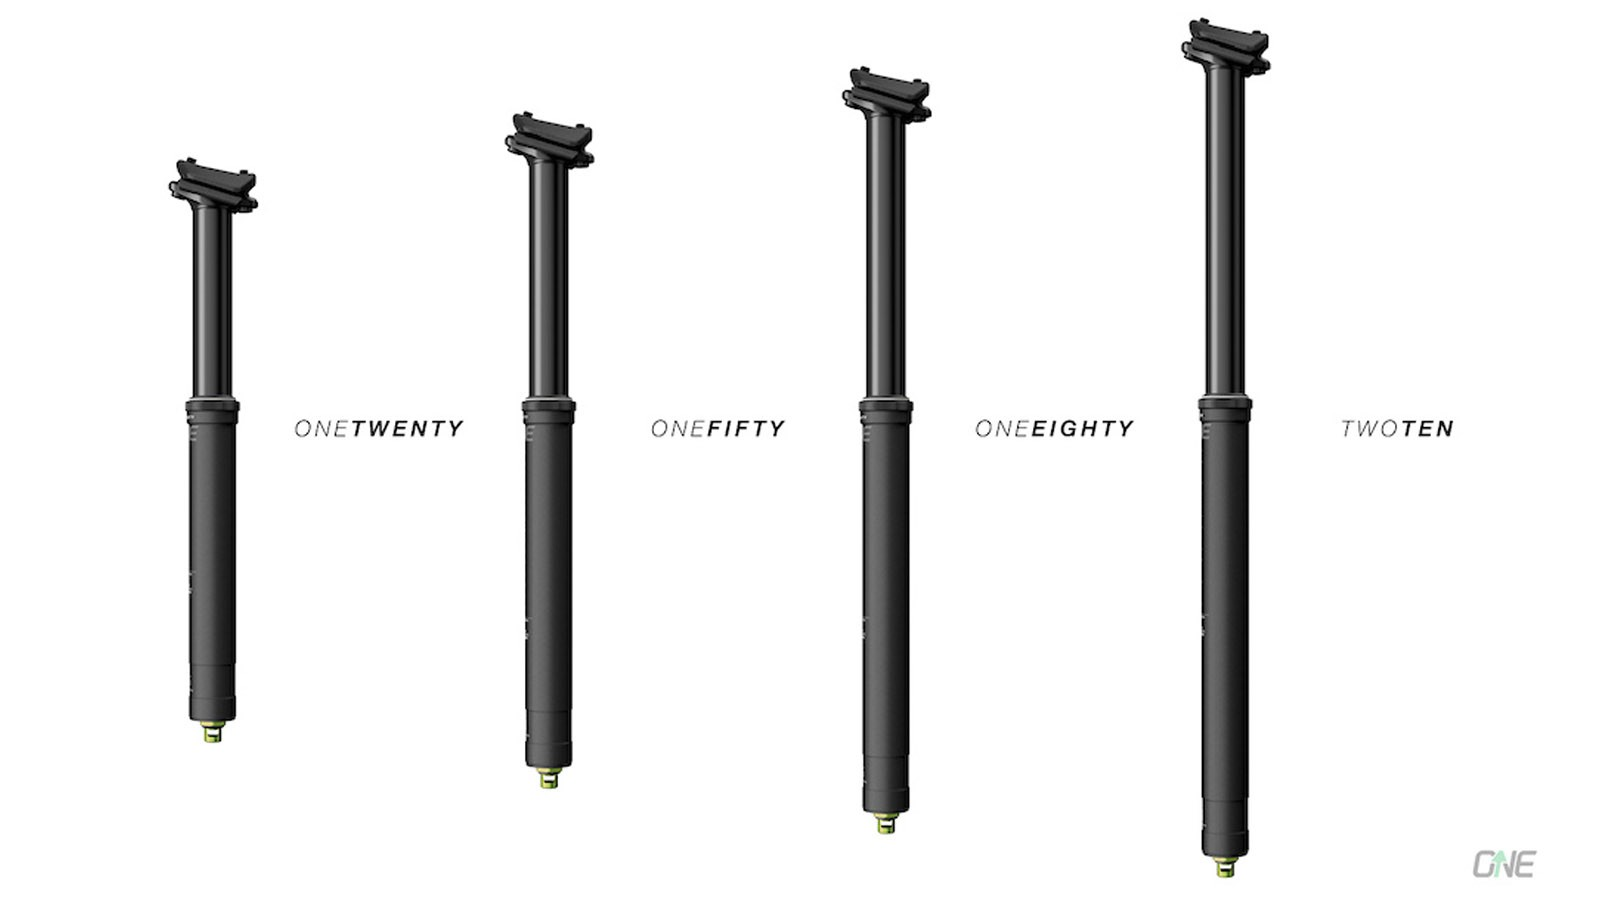 There are lengths to suit riders of all sizes on OneUp's new dropper post